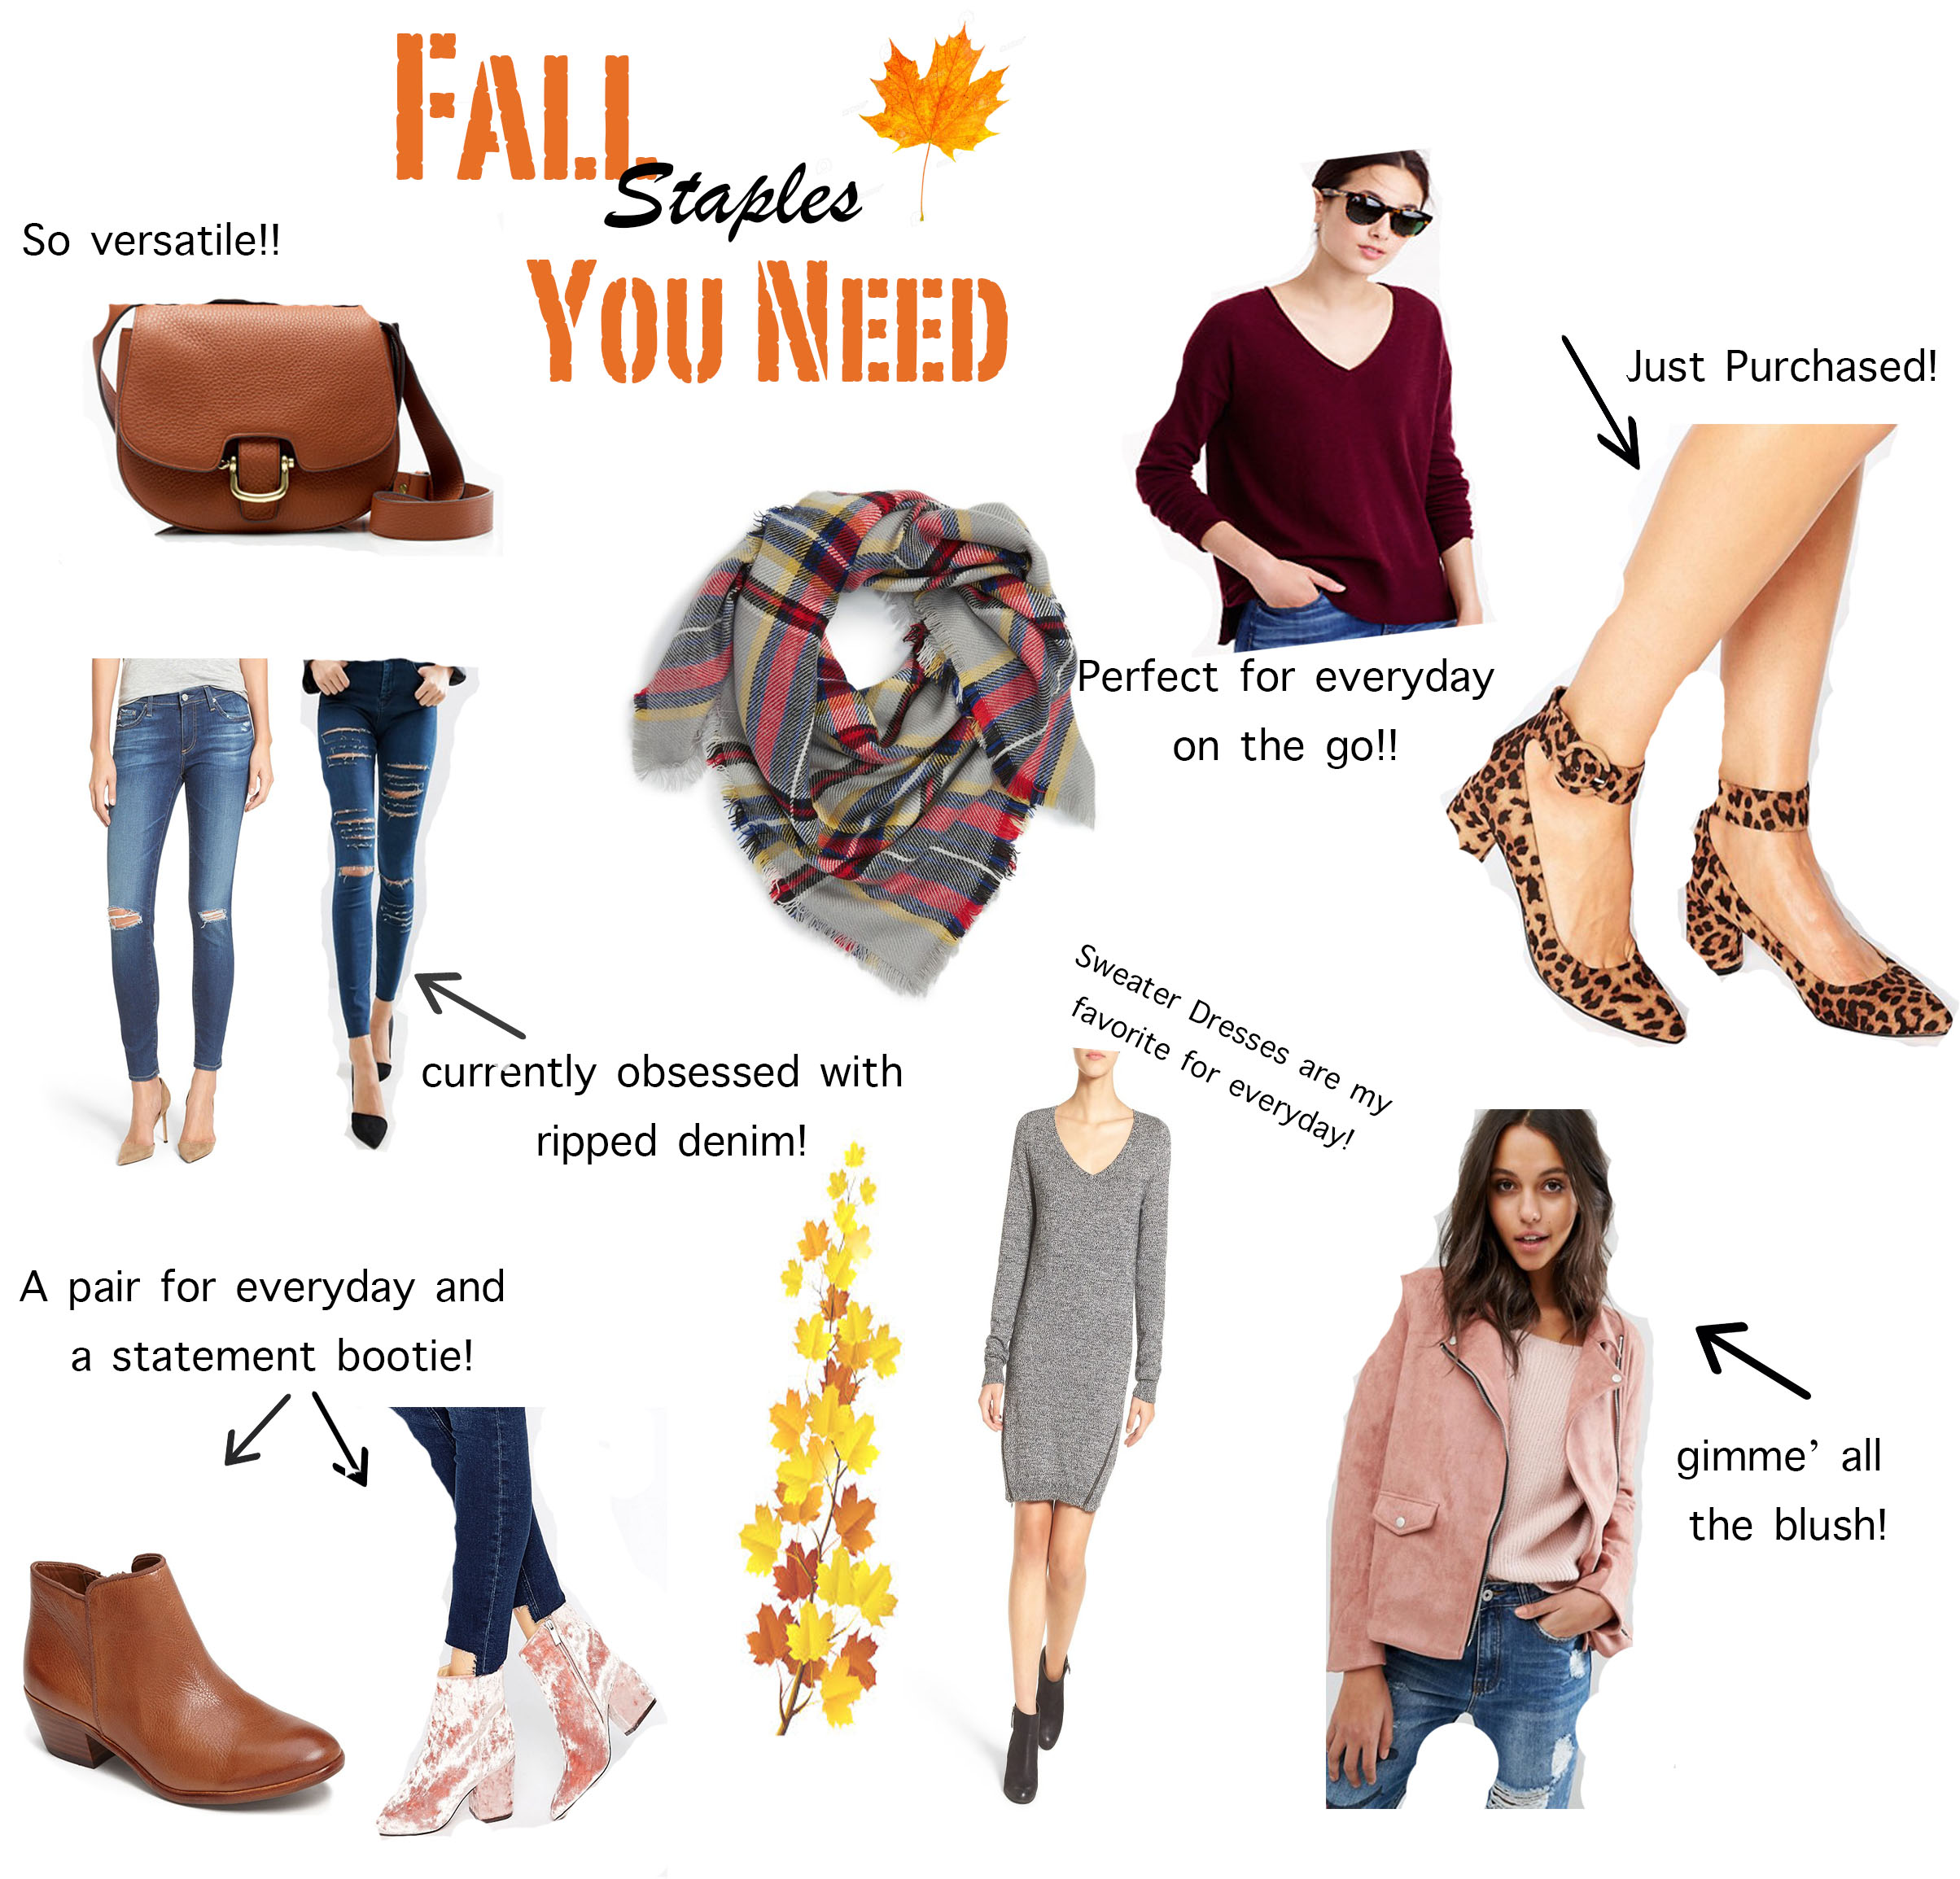 fall staples you NEED | AMS Blog